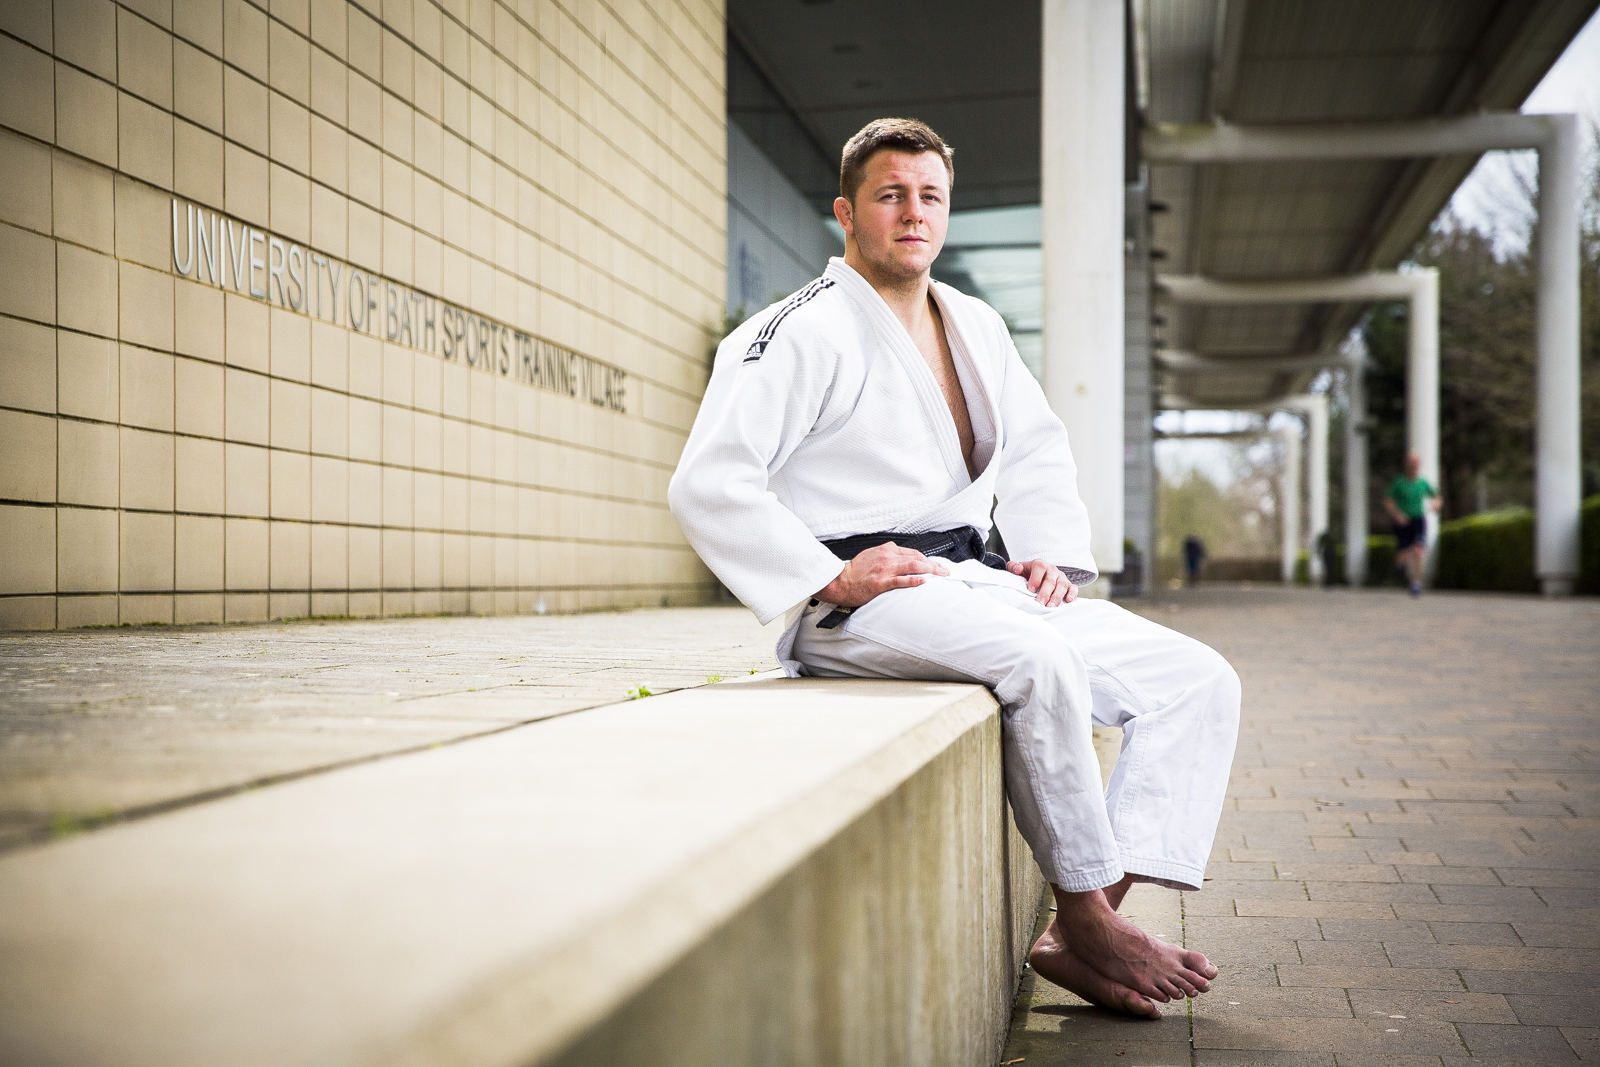 British Judo Olympic hopeful Ben Fletcher, at the Sports Training Village at the Univrsity of Bath.